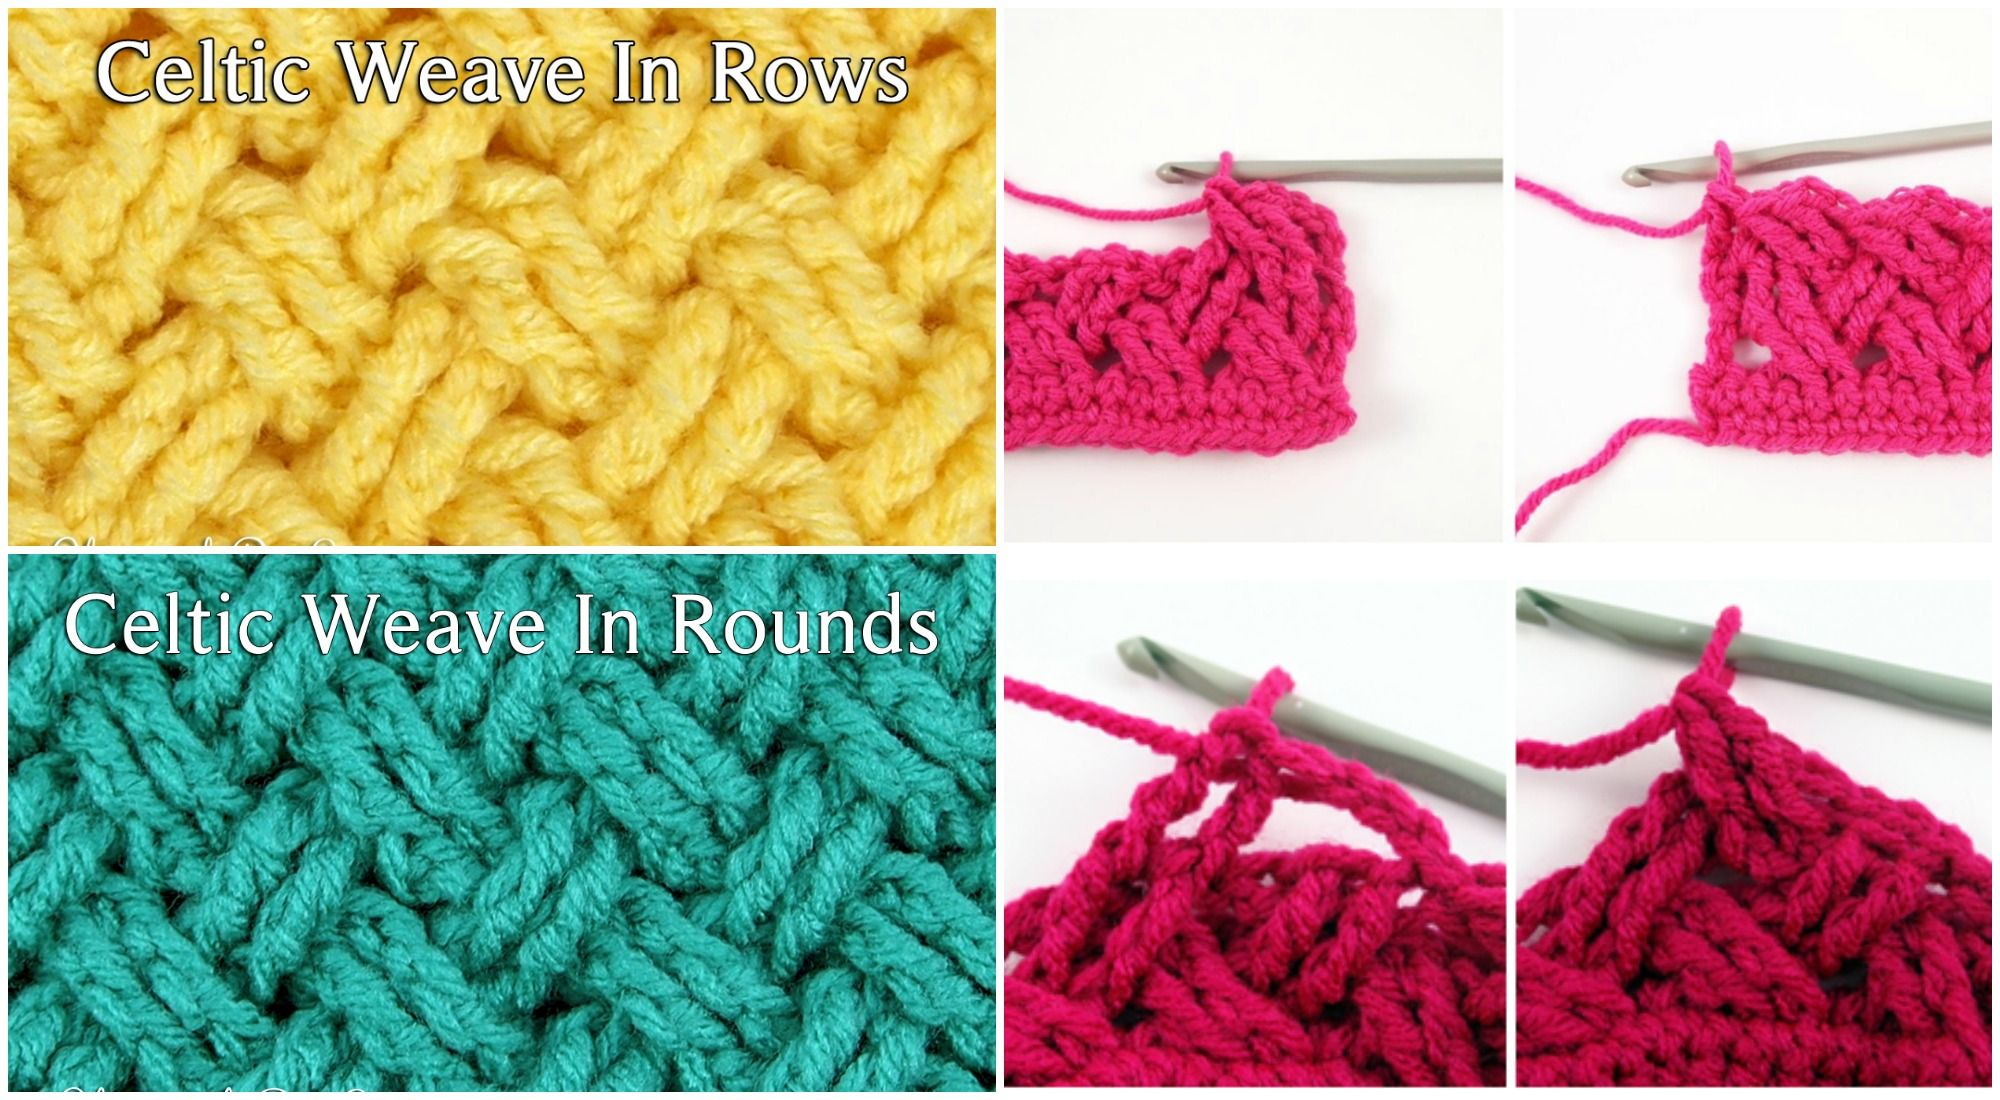 Crochet Celtic Stich in Rows and in Rounds | Crochet, Stitch and Blanket